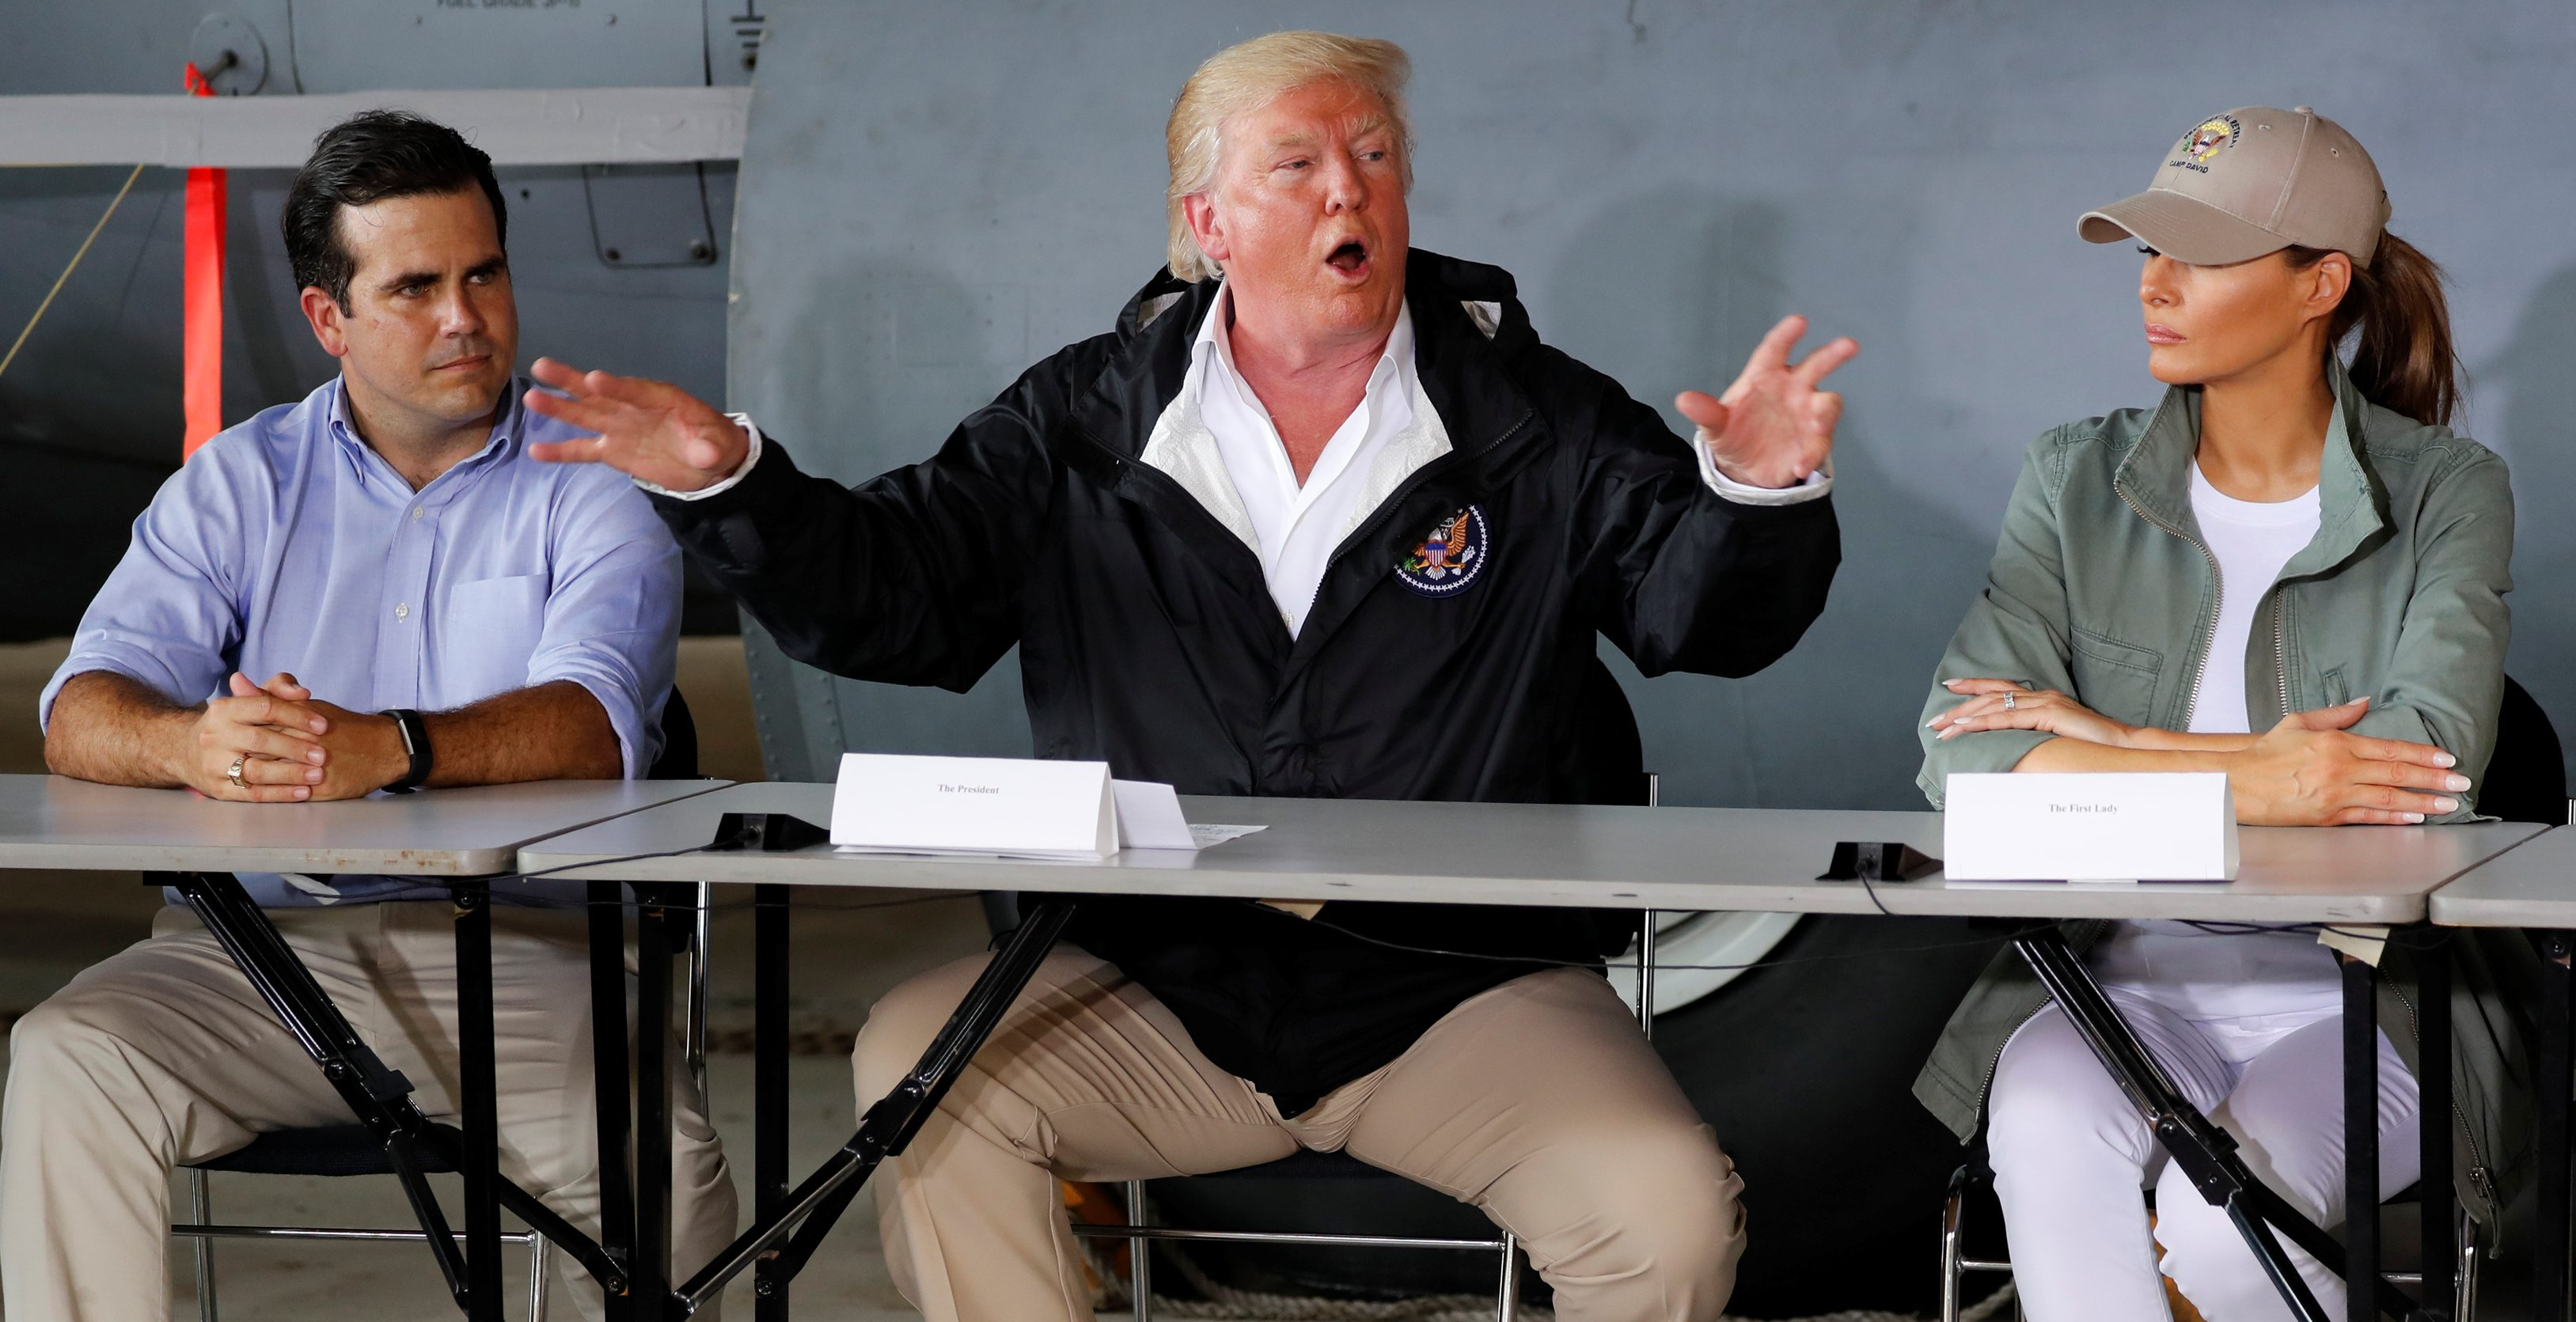 U.S. President Donald Trump, sitting between Puerto Rico Governor Ricardo Rossello and first lady Melania Trump during his first visit to the island after hurricane Maria.